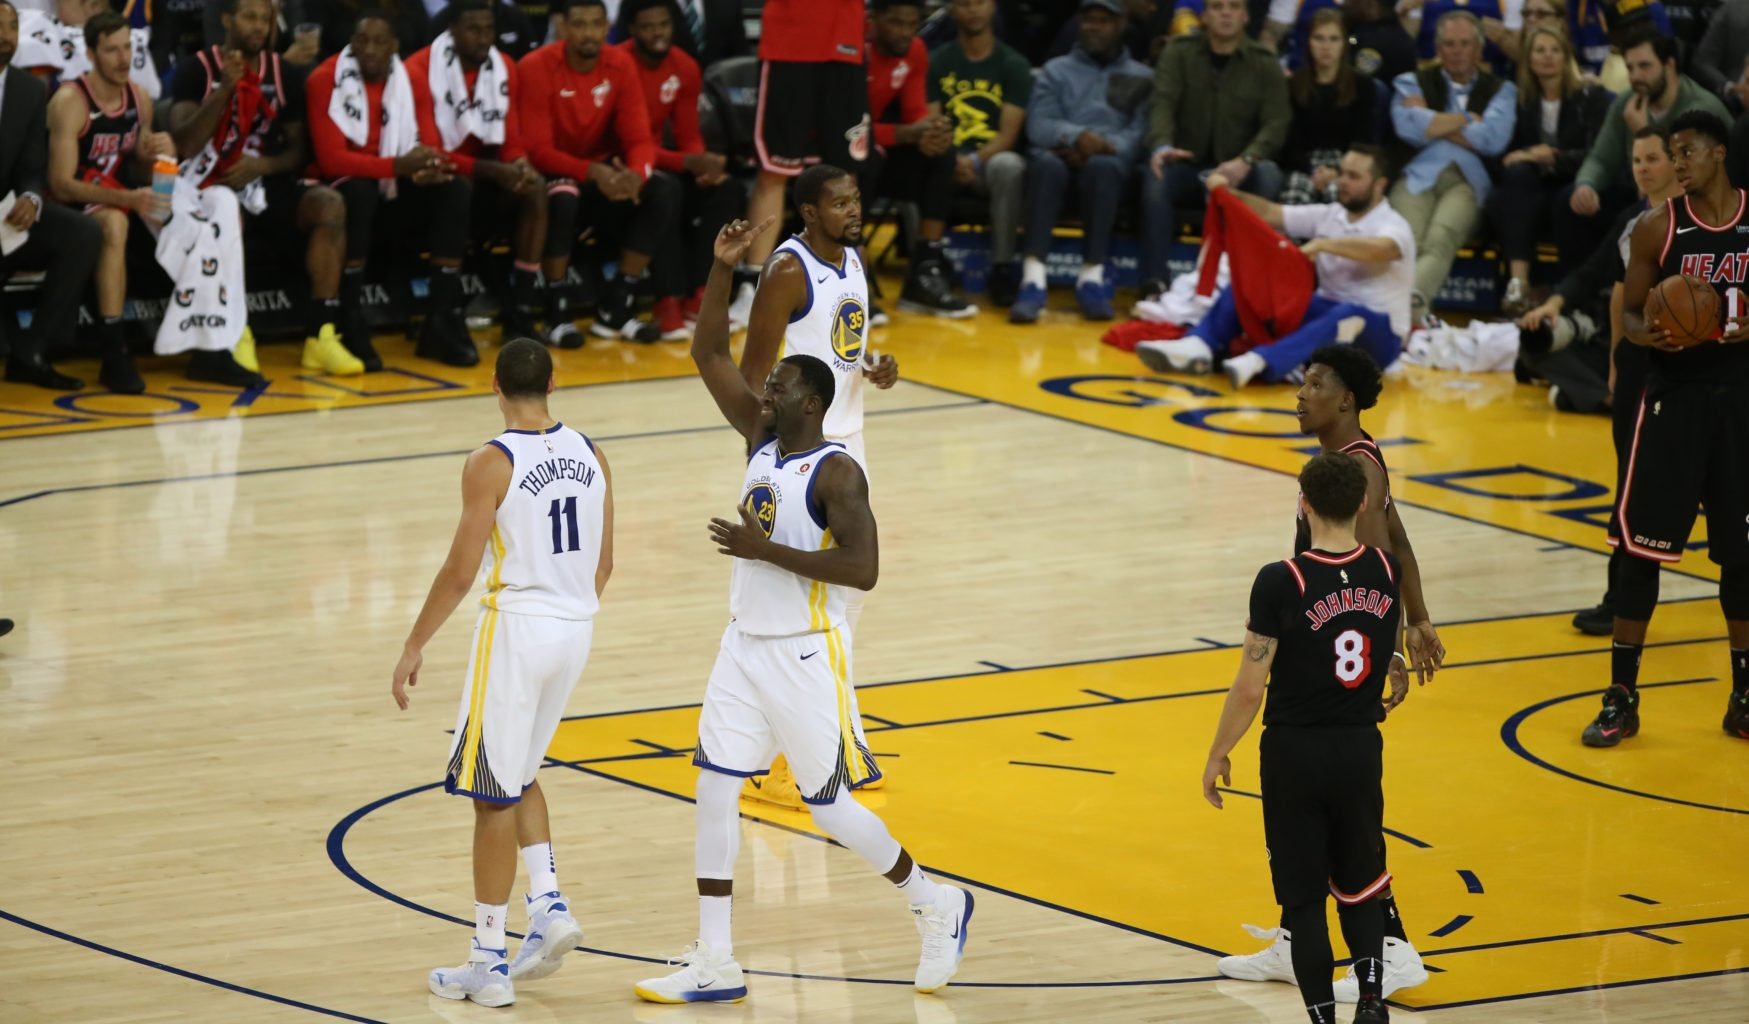 Draymond Green celebrates during the first half of the Miami Heat vs Golden State Warriors game at Oracle Arena on Monday, November 6th, 2017. (Mira Laing/Special to S.F. Examiner)